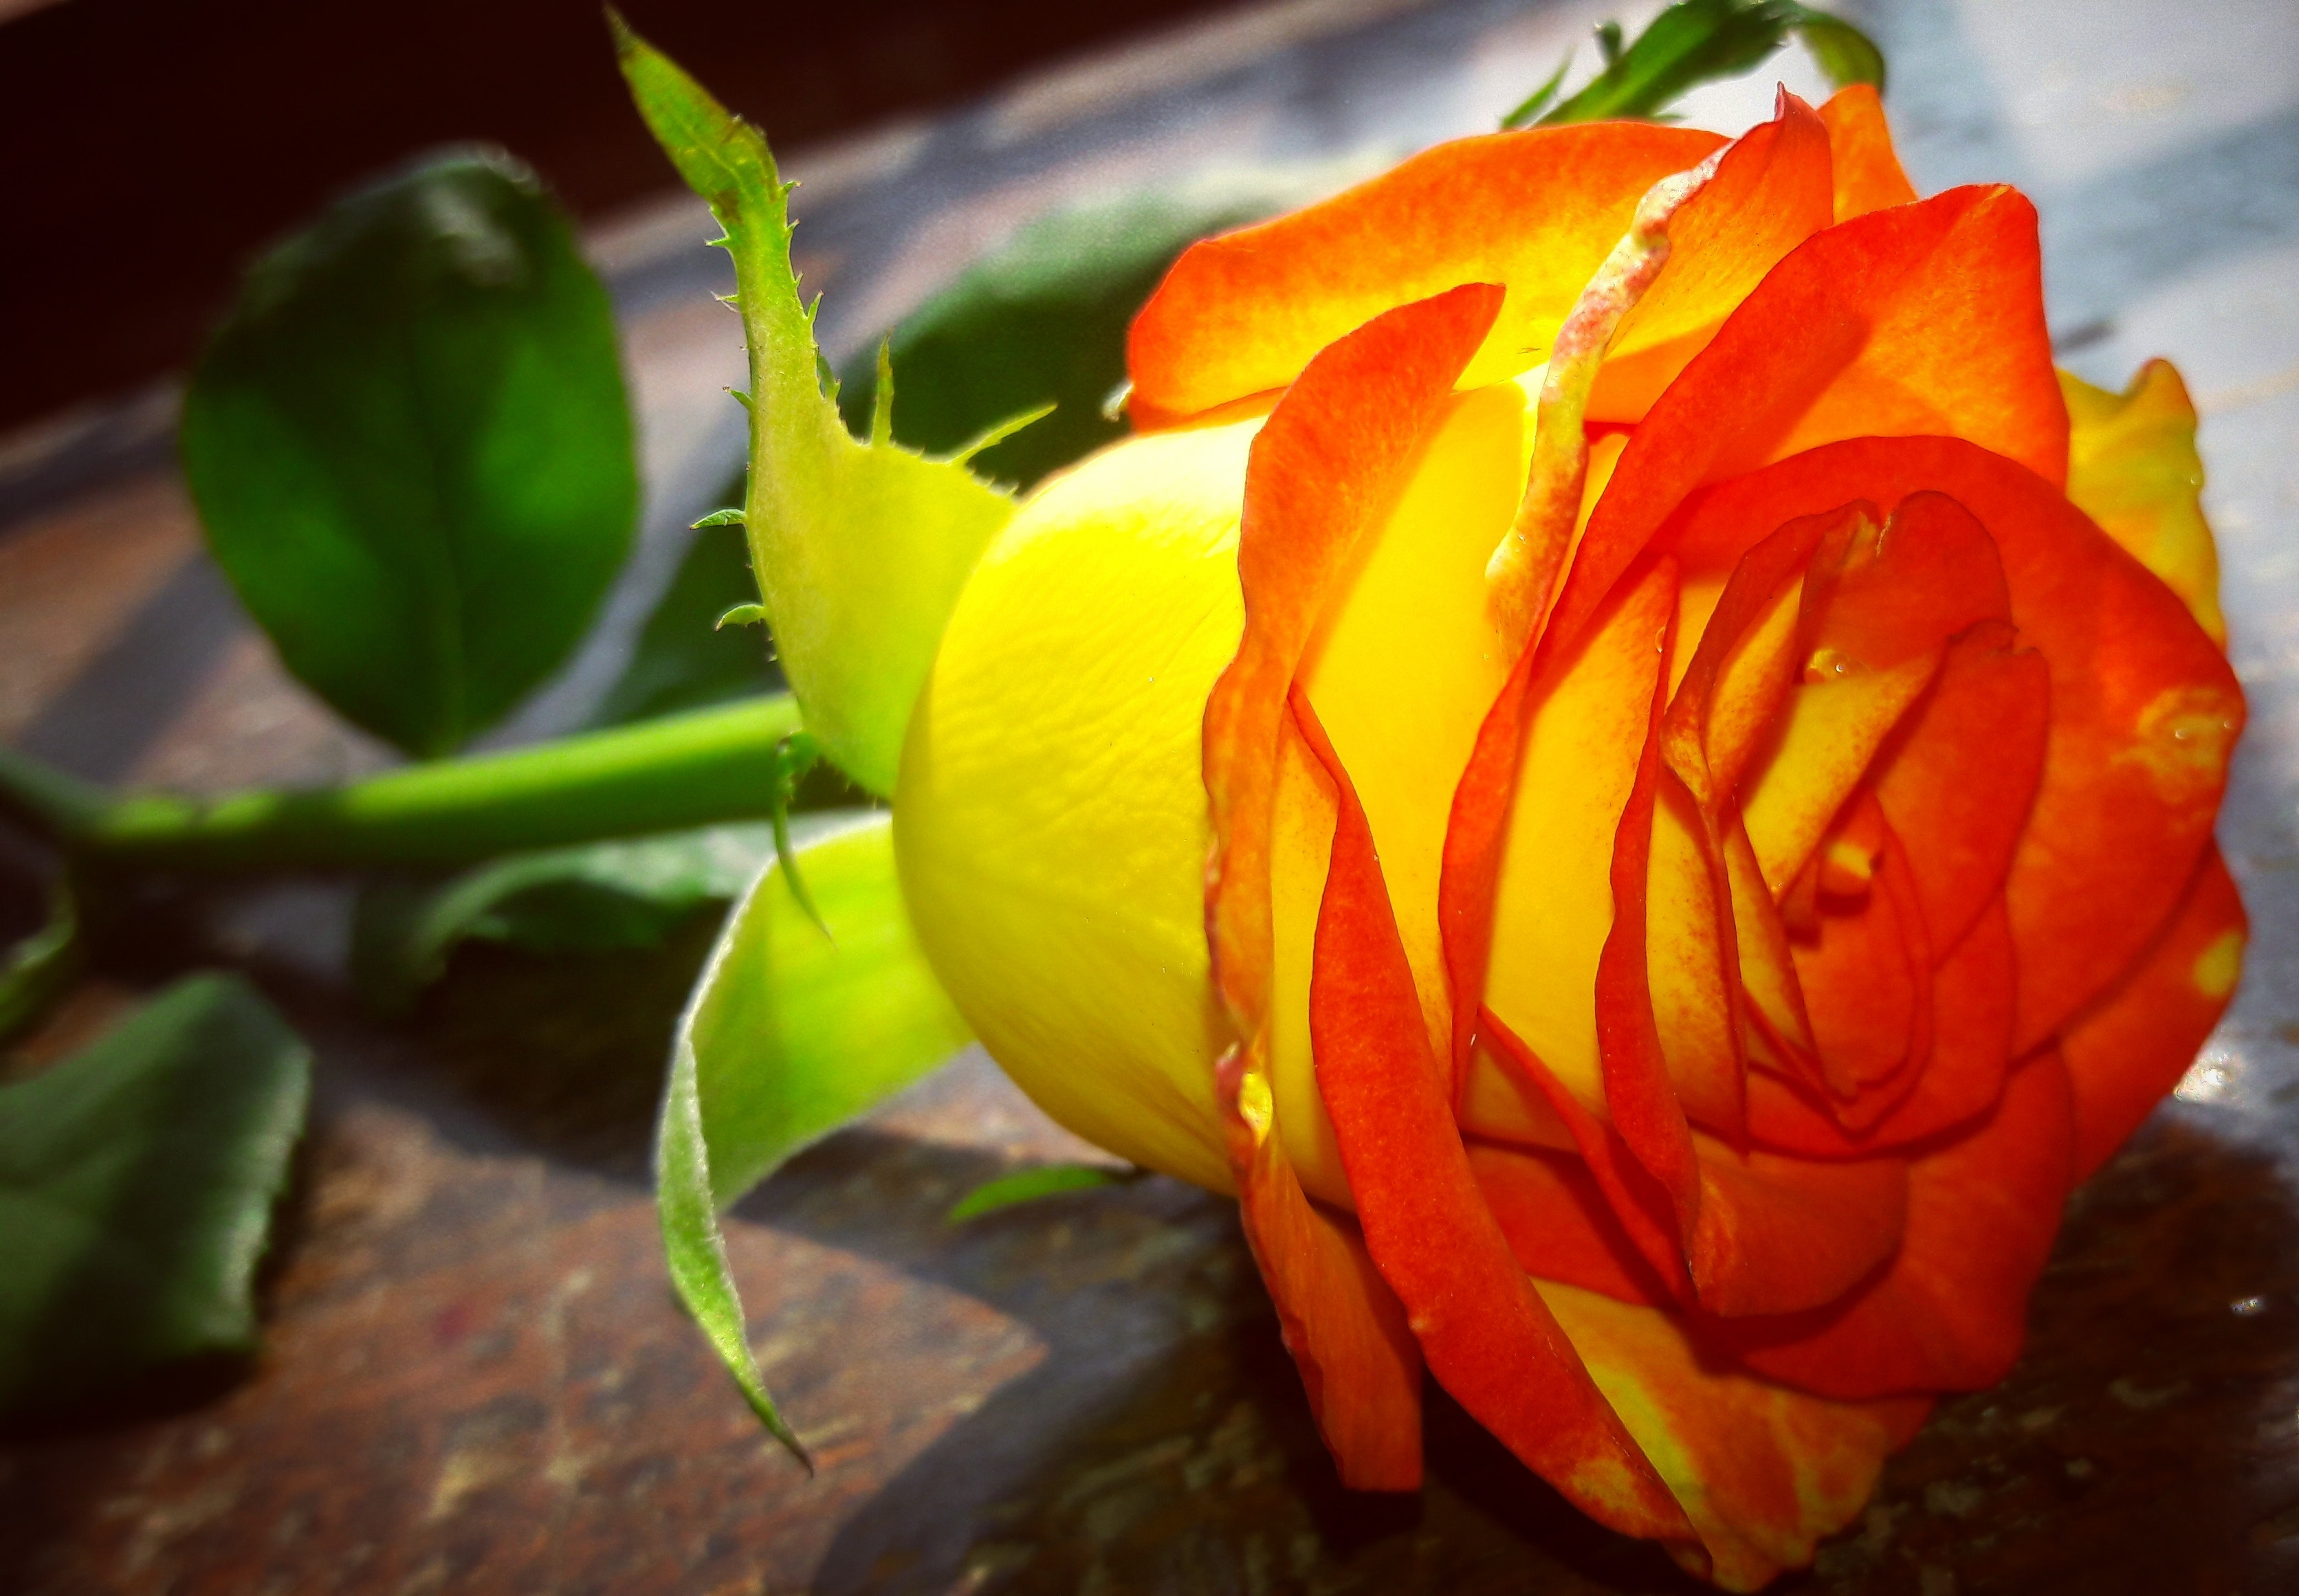 Free stock photo of a beautiful rose tabletop photography yellow free download izmirmasajfo